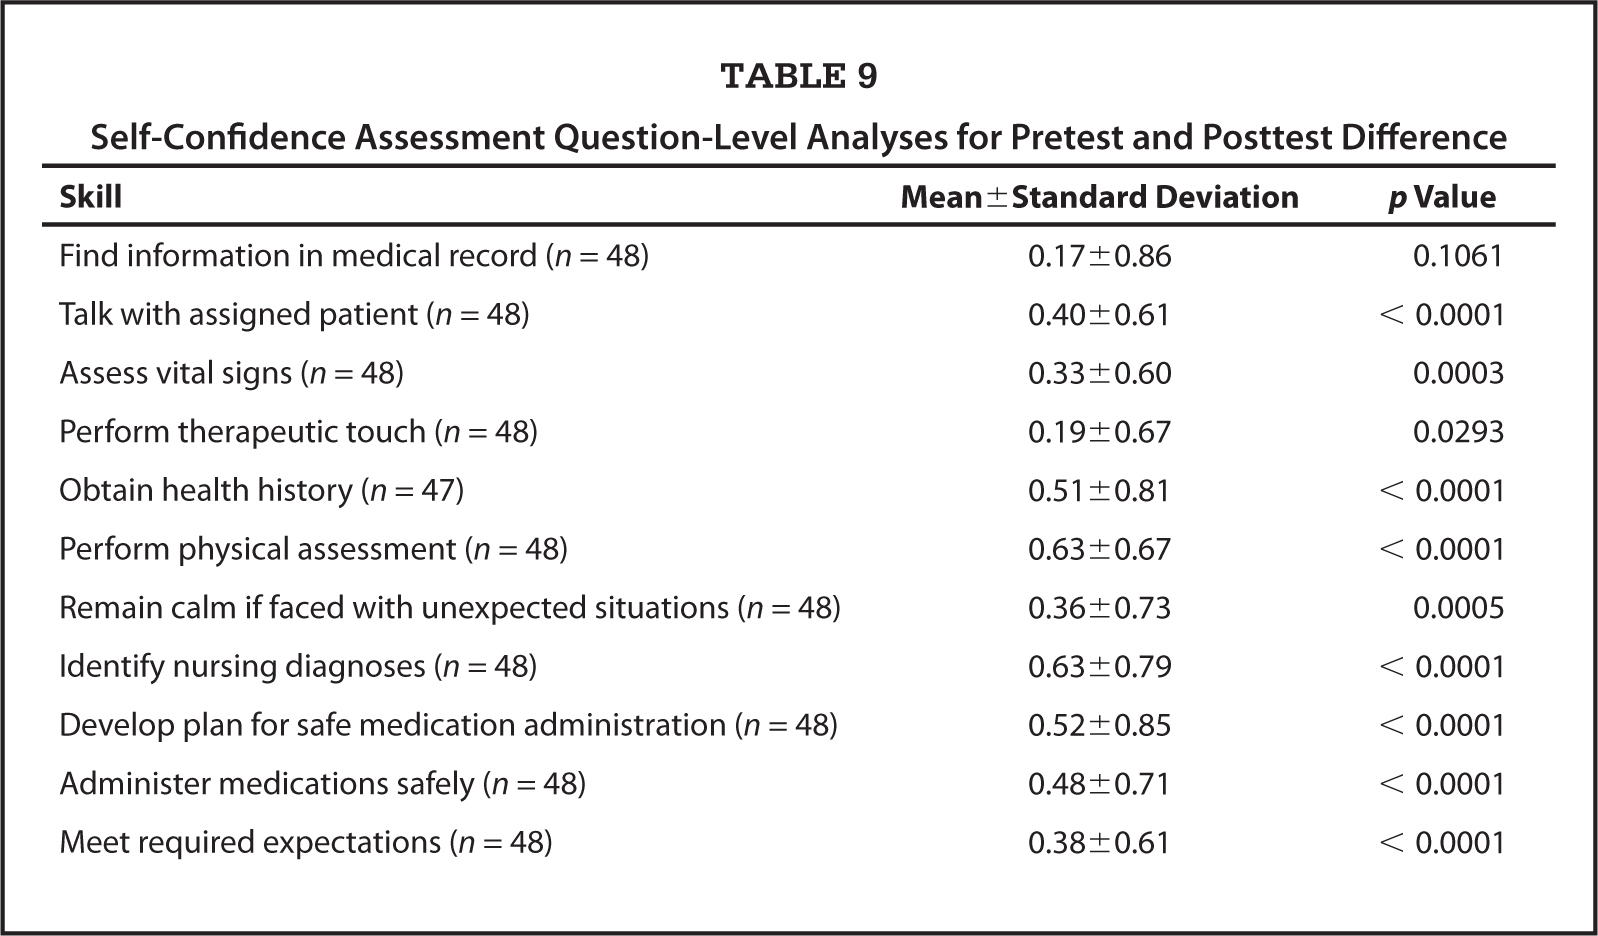 Self-Confidence Assessment Question-Level Analyses for Pretest and Posttest Difference